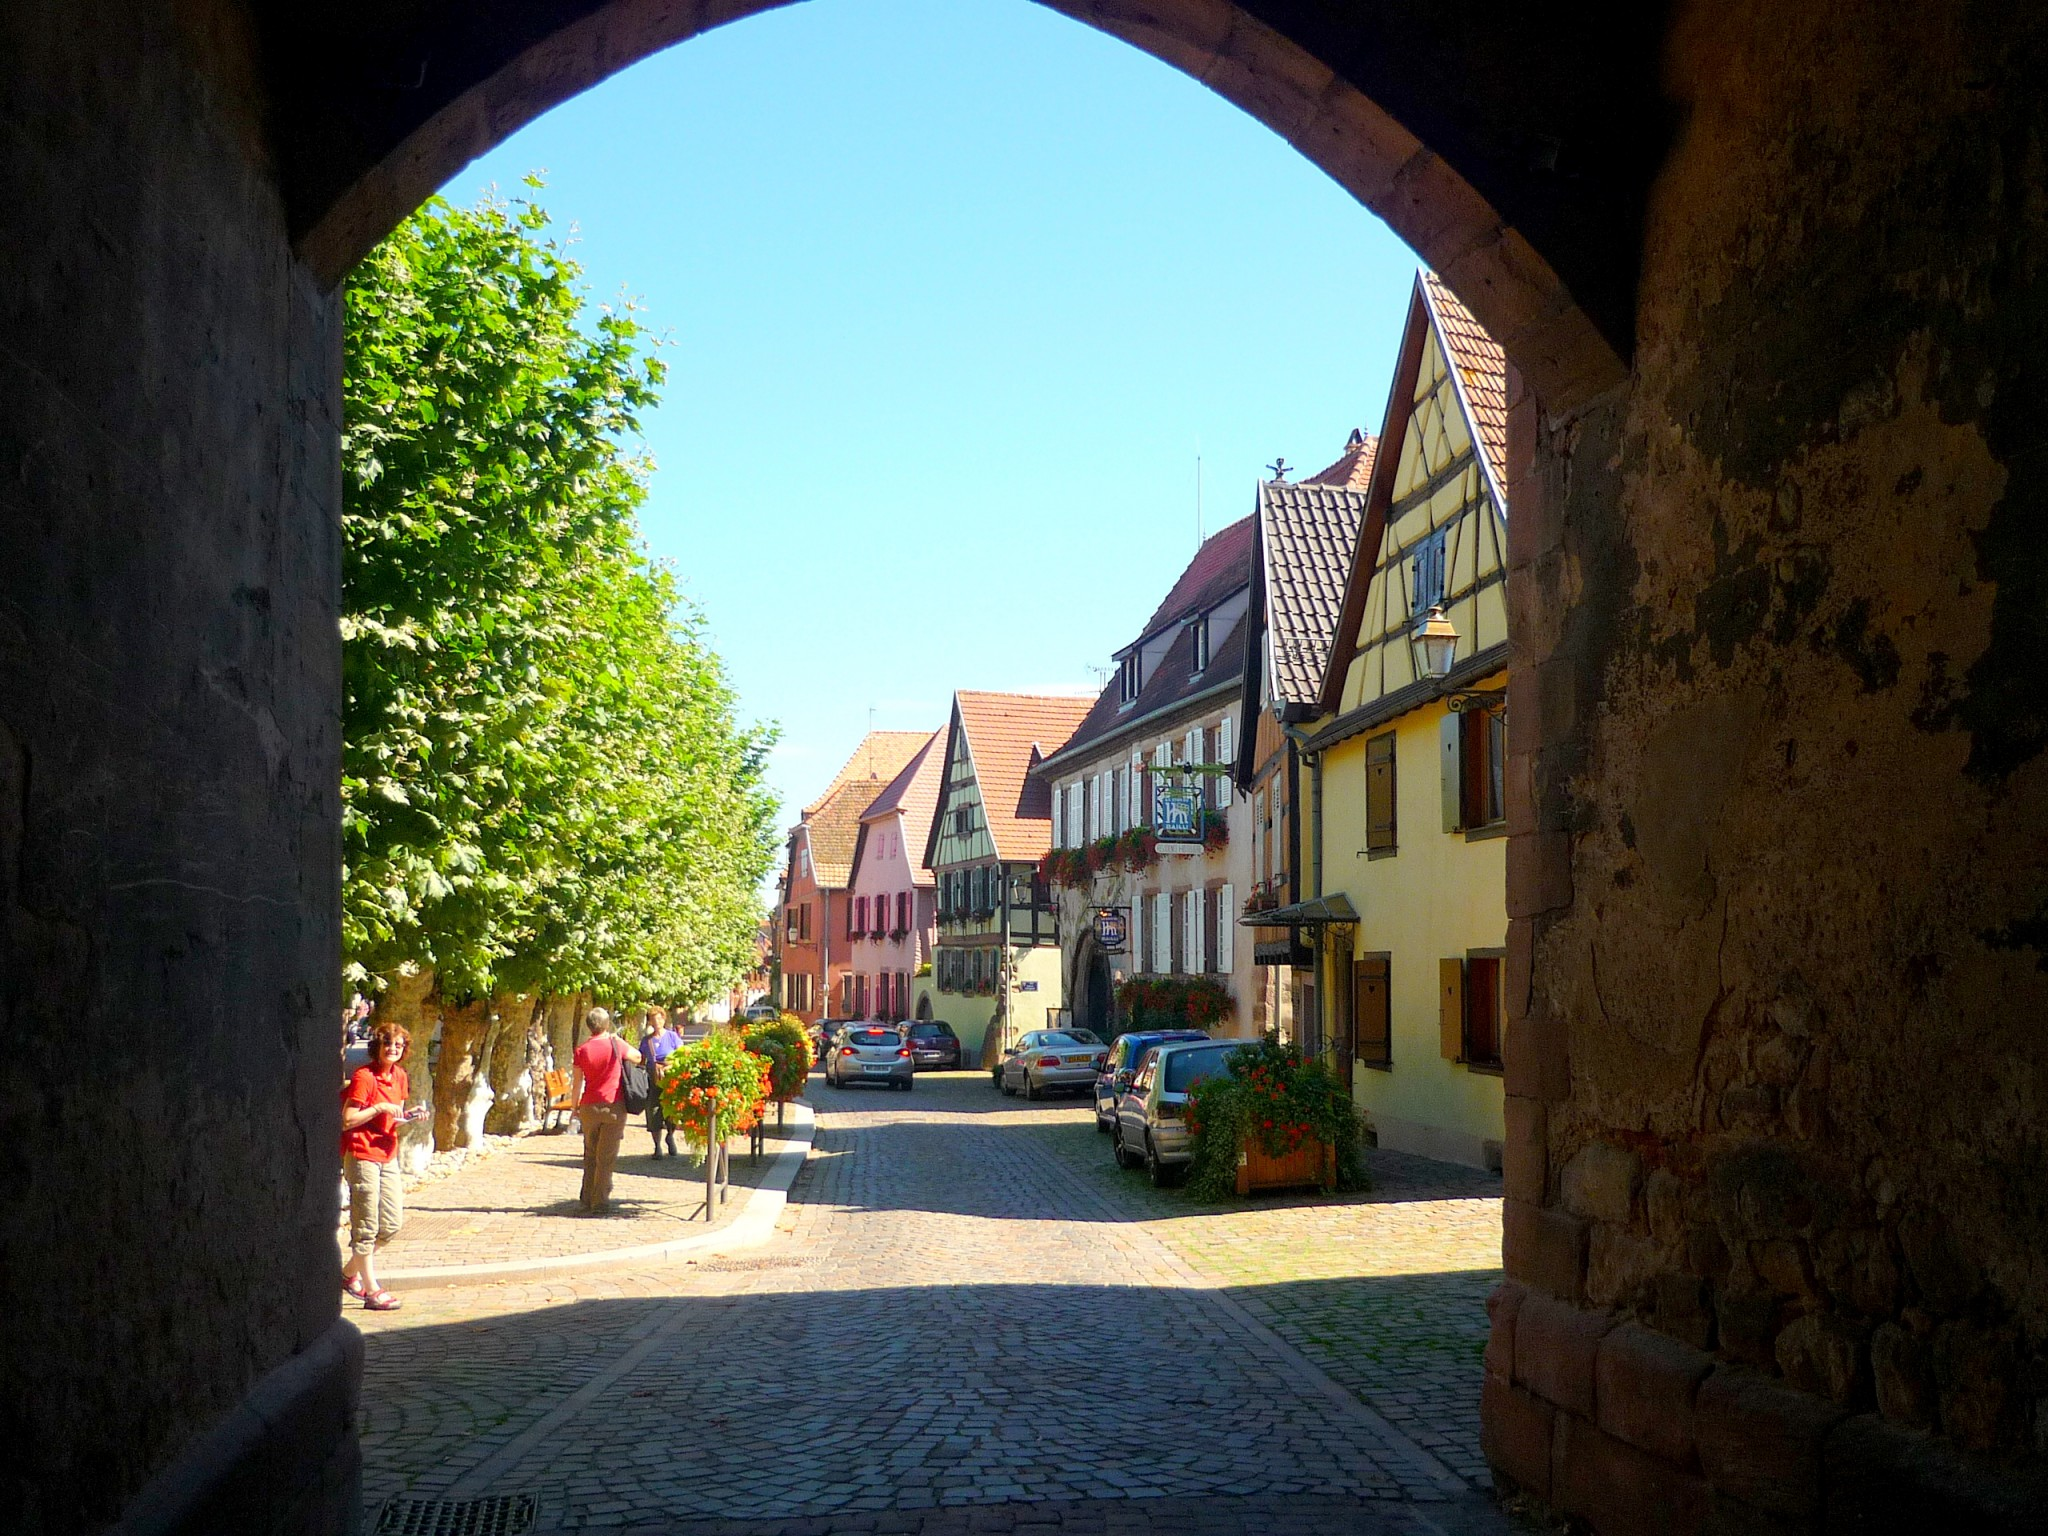 Under the Obertor (Porte Haute) in Bergheim © French Moments